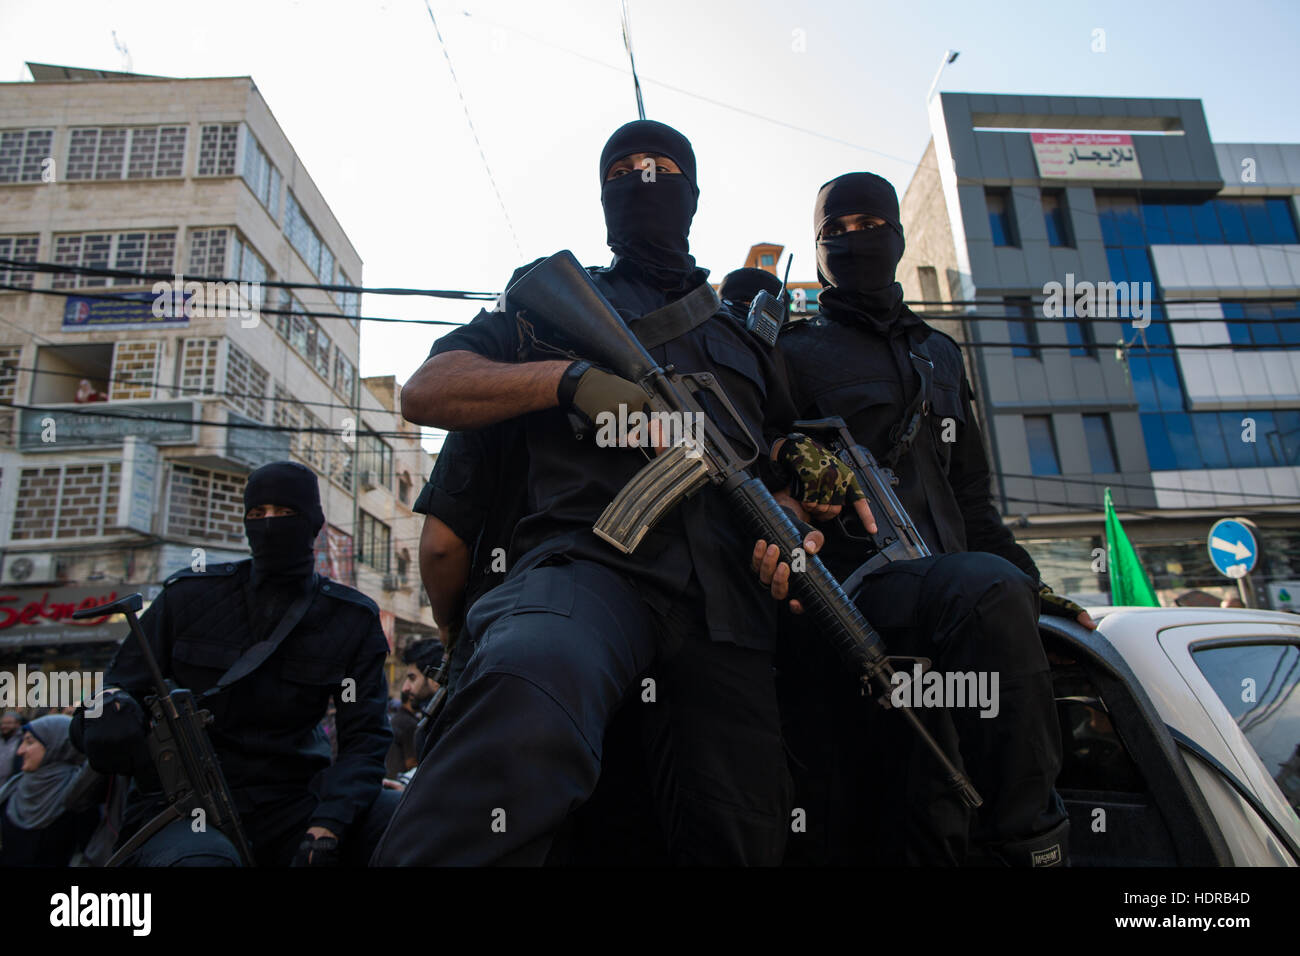 Fighters from the Al-Qassam brigade, the military wing of Hamas organisation, at a celebration of their 48th anniversary. Stock Photo